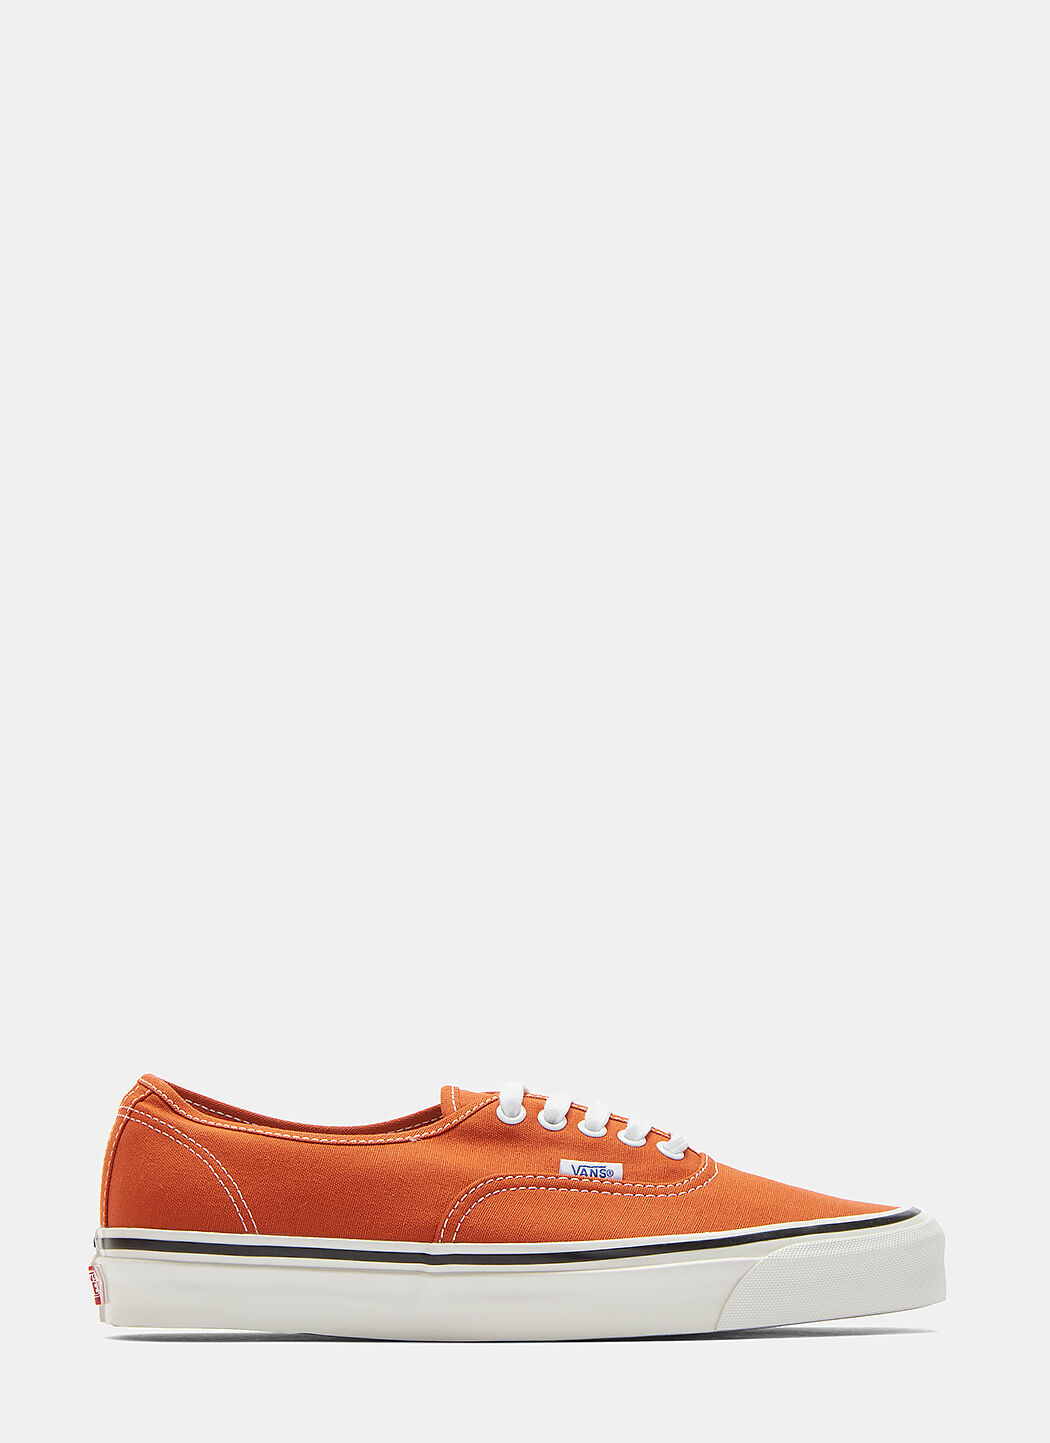 Authentic 44DX Anaheim Factory Sneakers in Orange